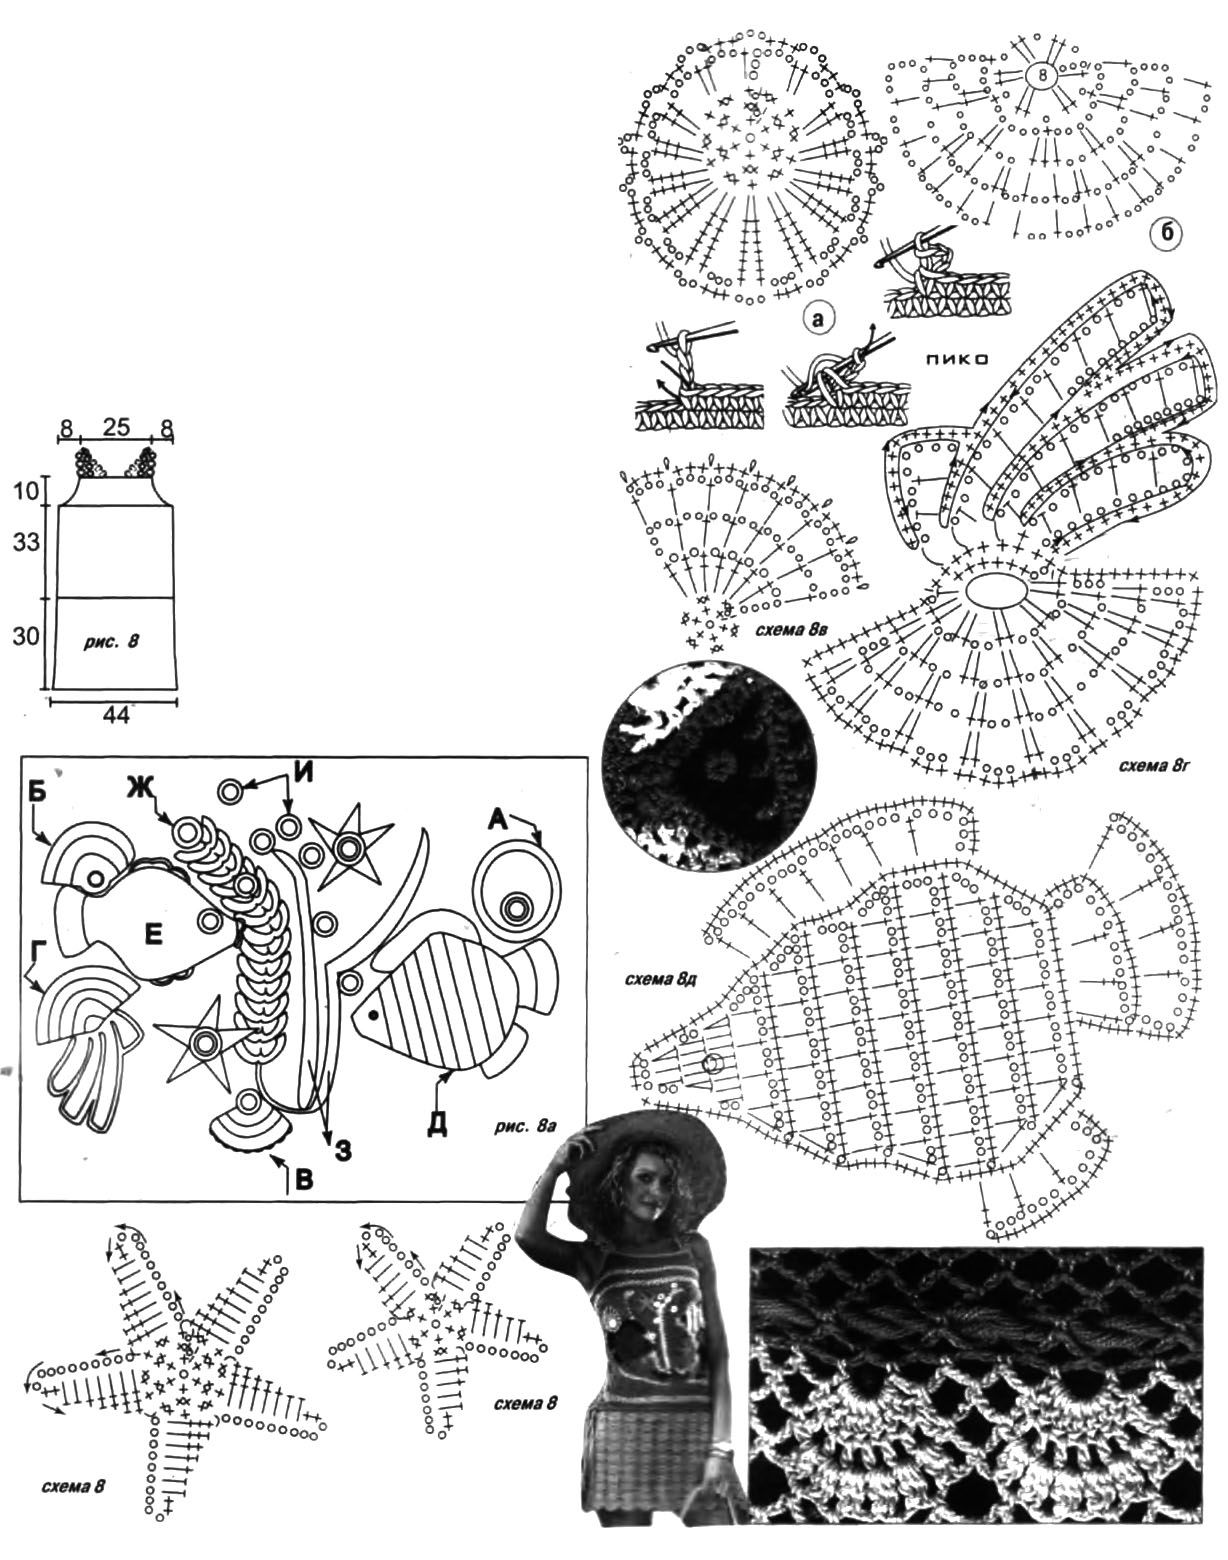 Fish starfish octopus seashell diagrams only 01 irish crochet fish starfish octopus seashell diagrams only 01 ccuart Choice Image